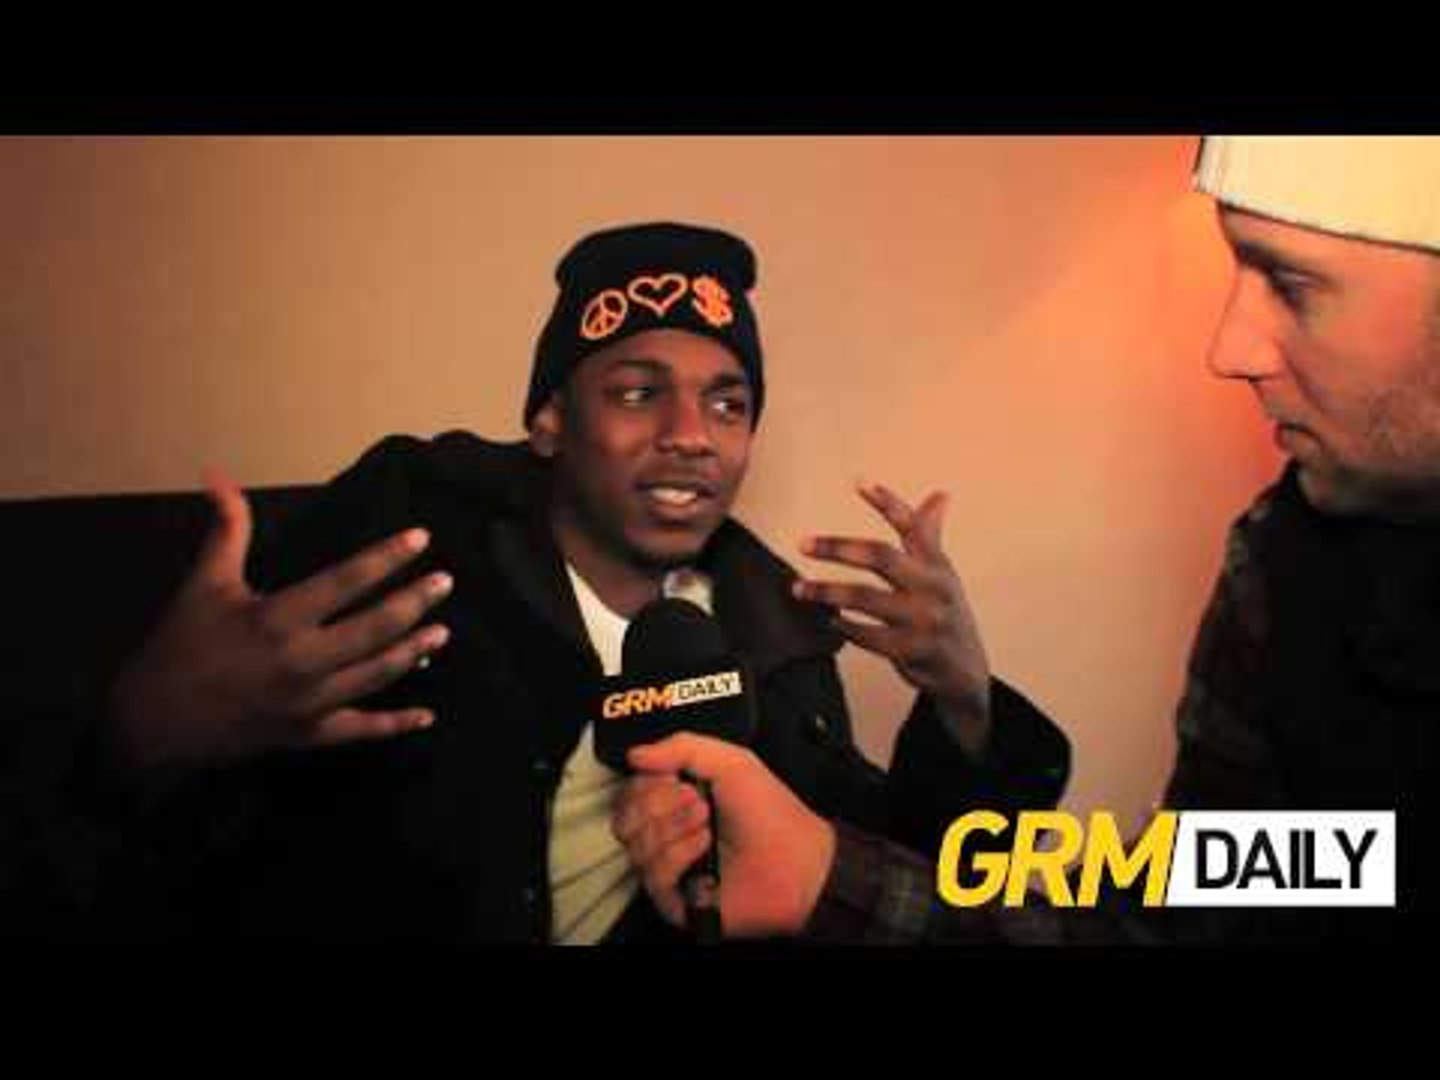 KENDRICK LAMAR TALKS ALBUM, BLOODS AND CRIPS, ASAP ROCKY AND MORE